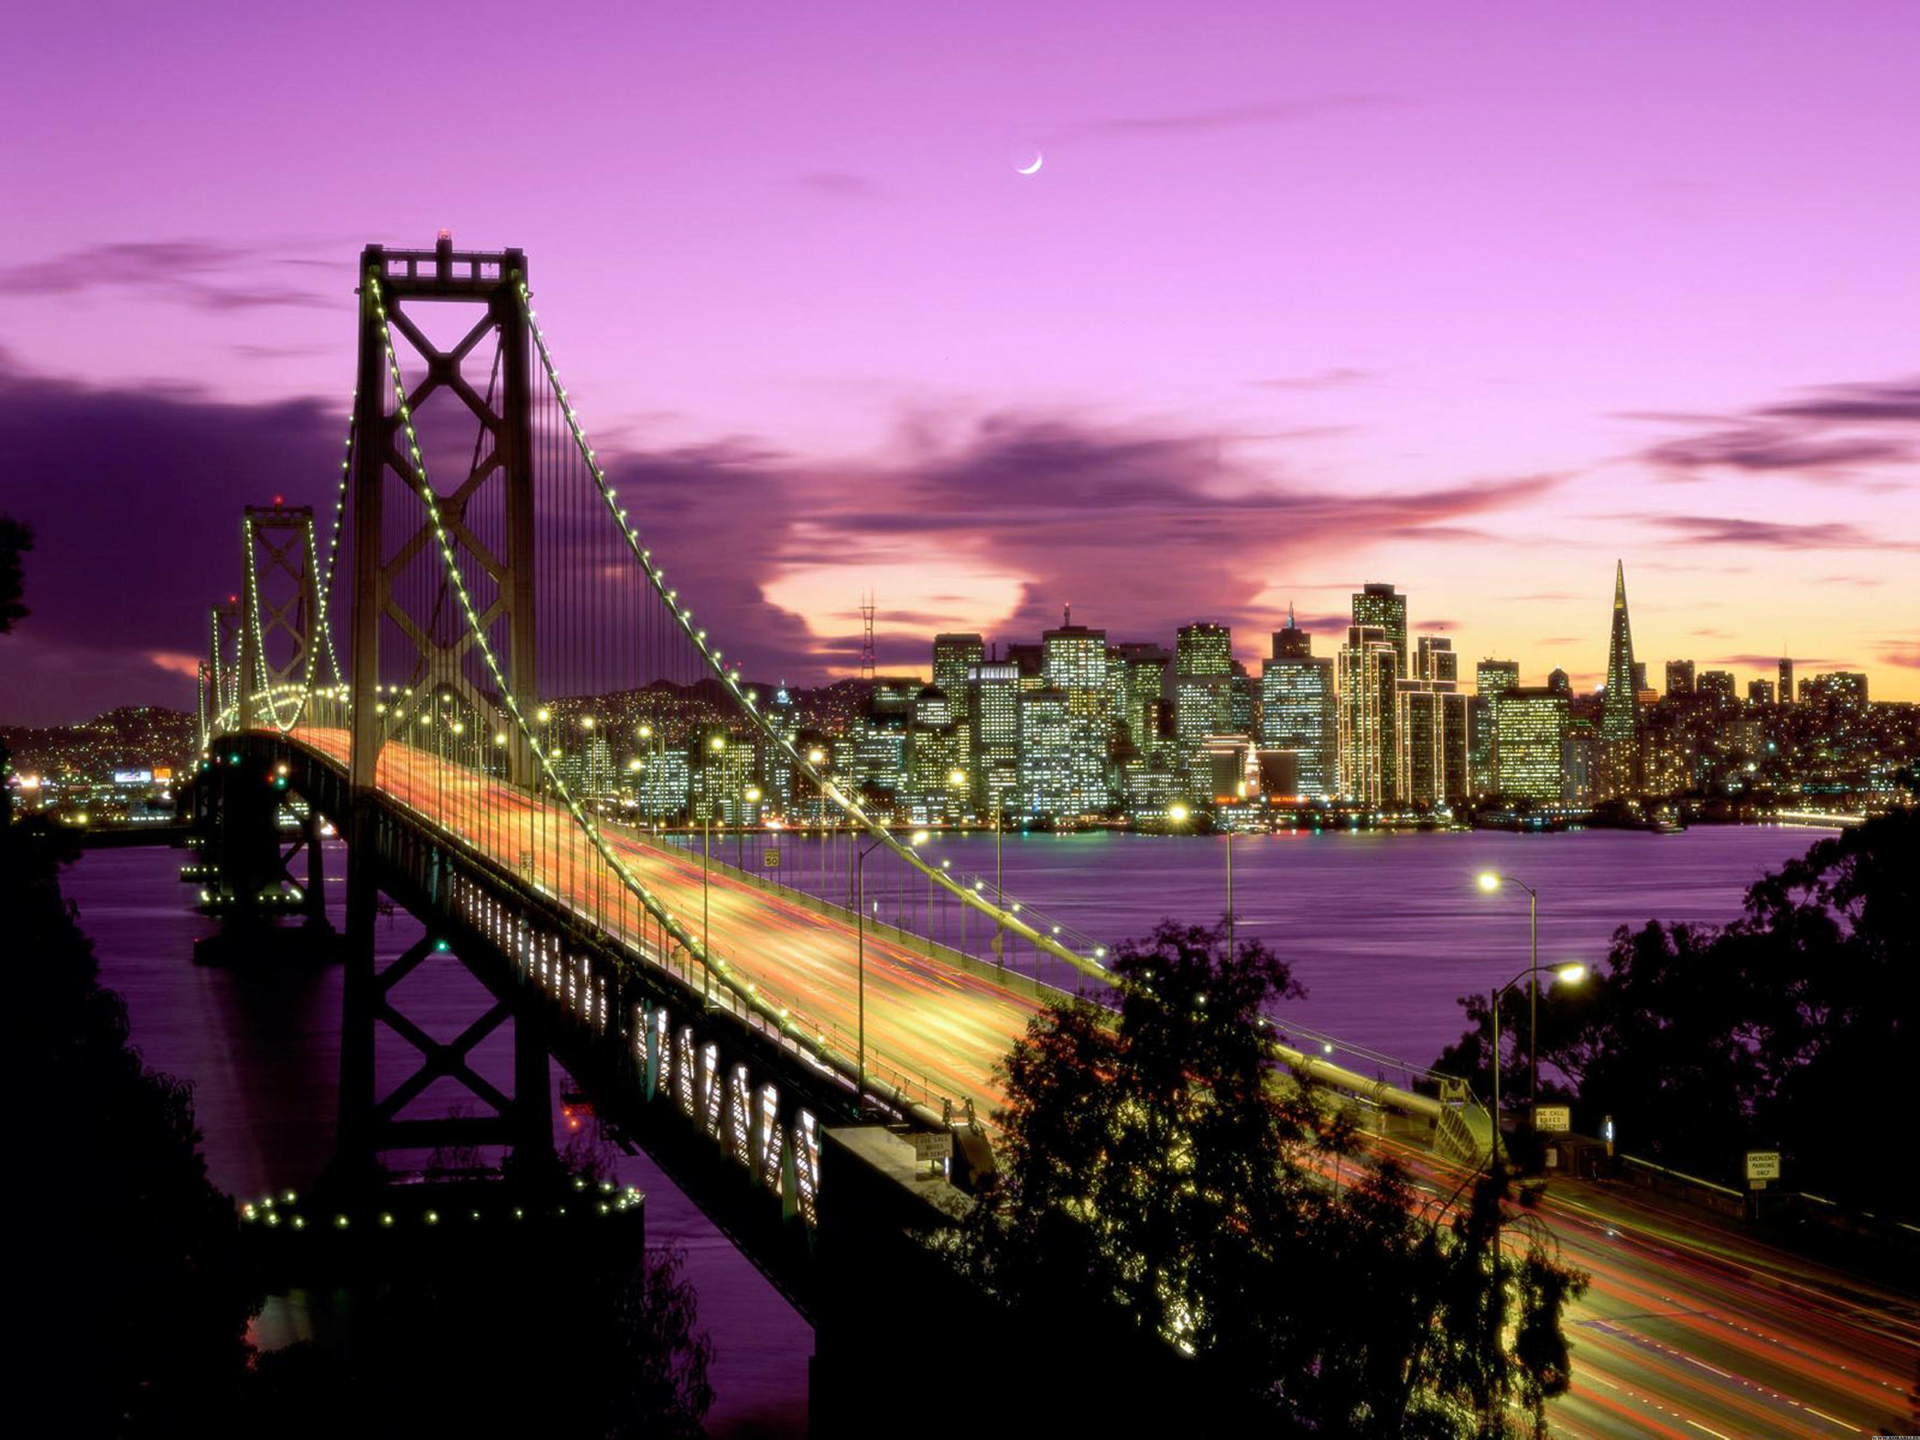 Sunset in San Francisco Full HD Wallpaper and Background